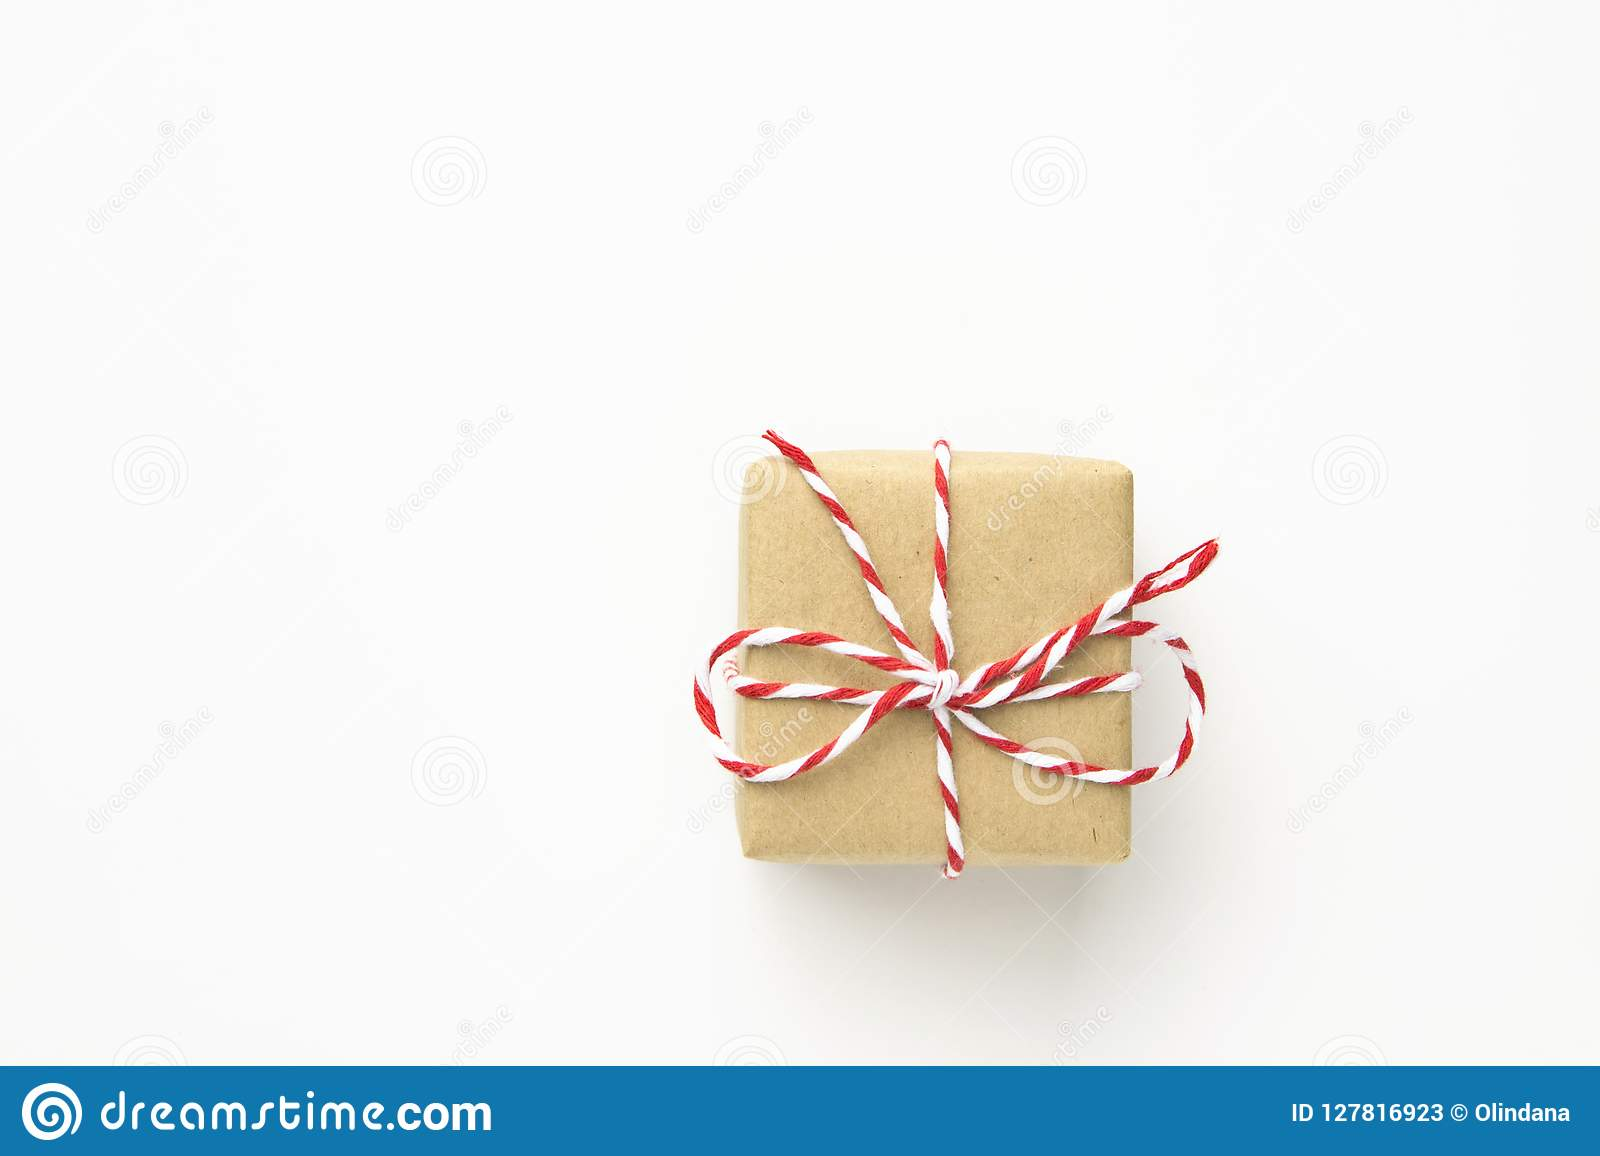 One Small Gift Box Wrapped In Brown Craft Paper Tied With Striped